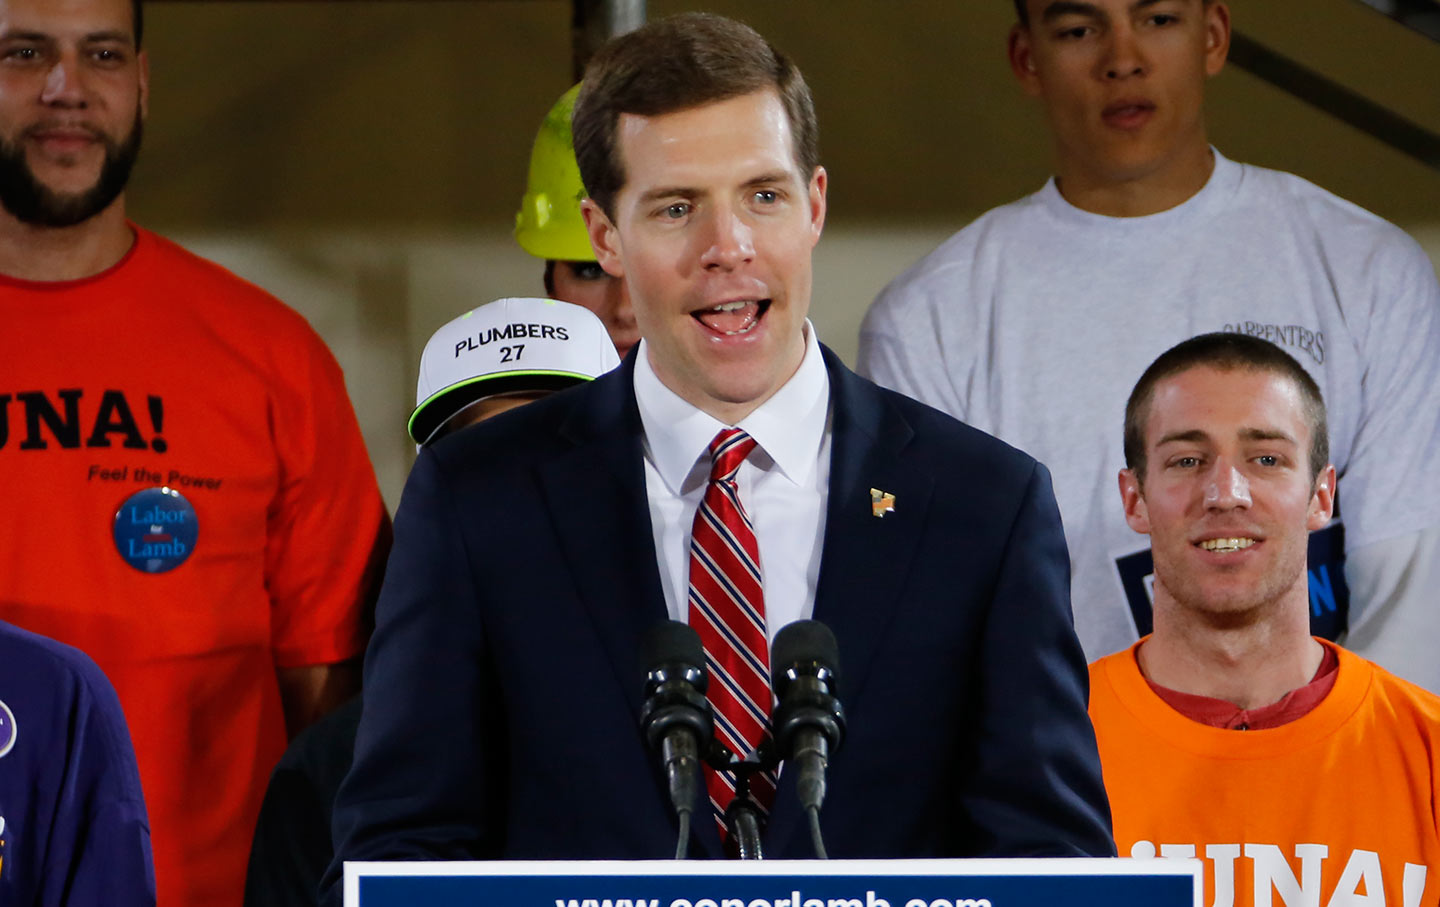 Conor Lamb campaigning in Pennsylvannia, 2018